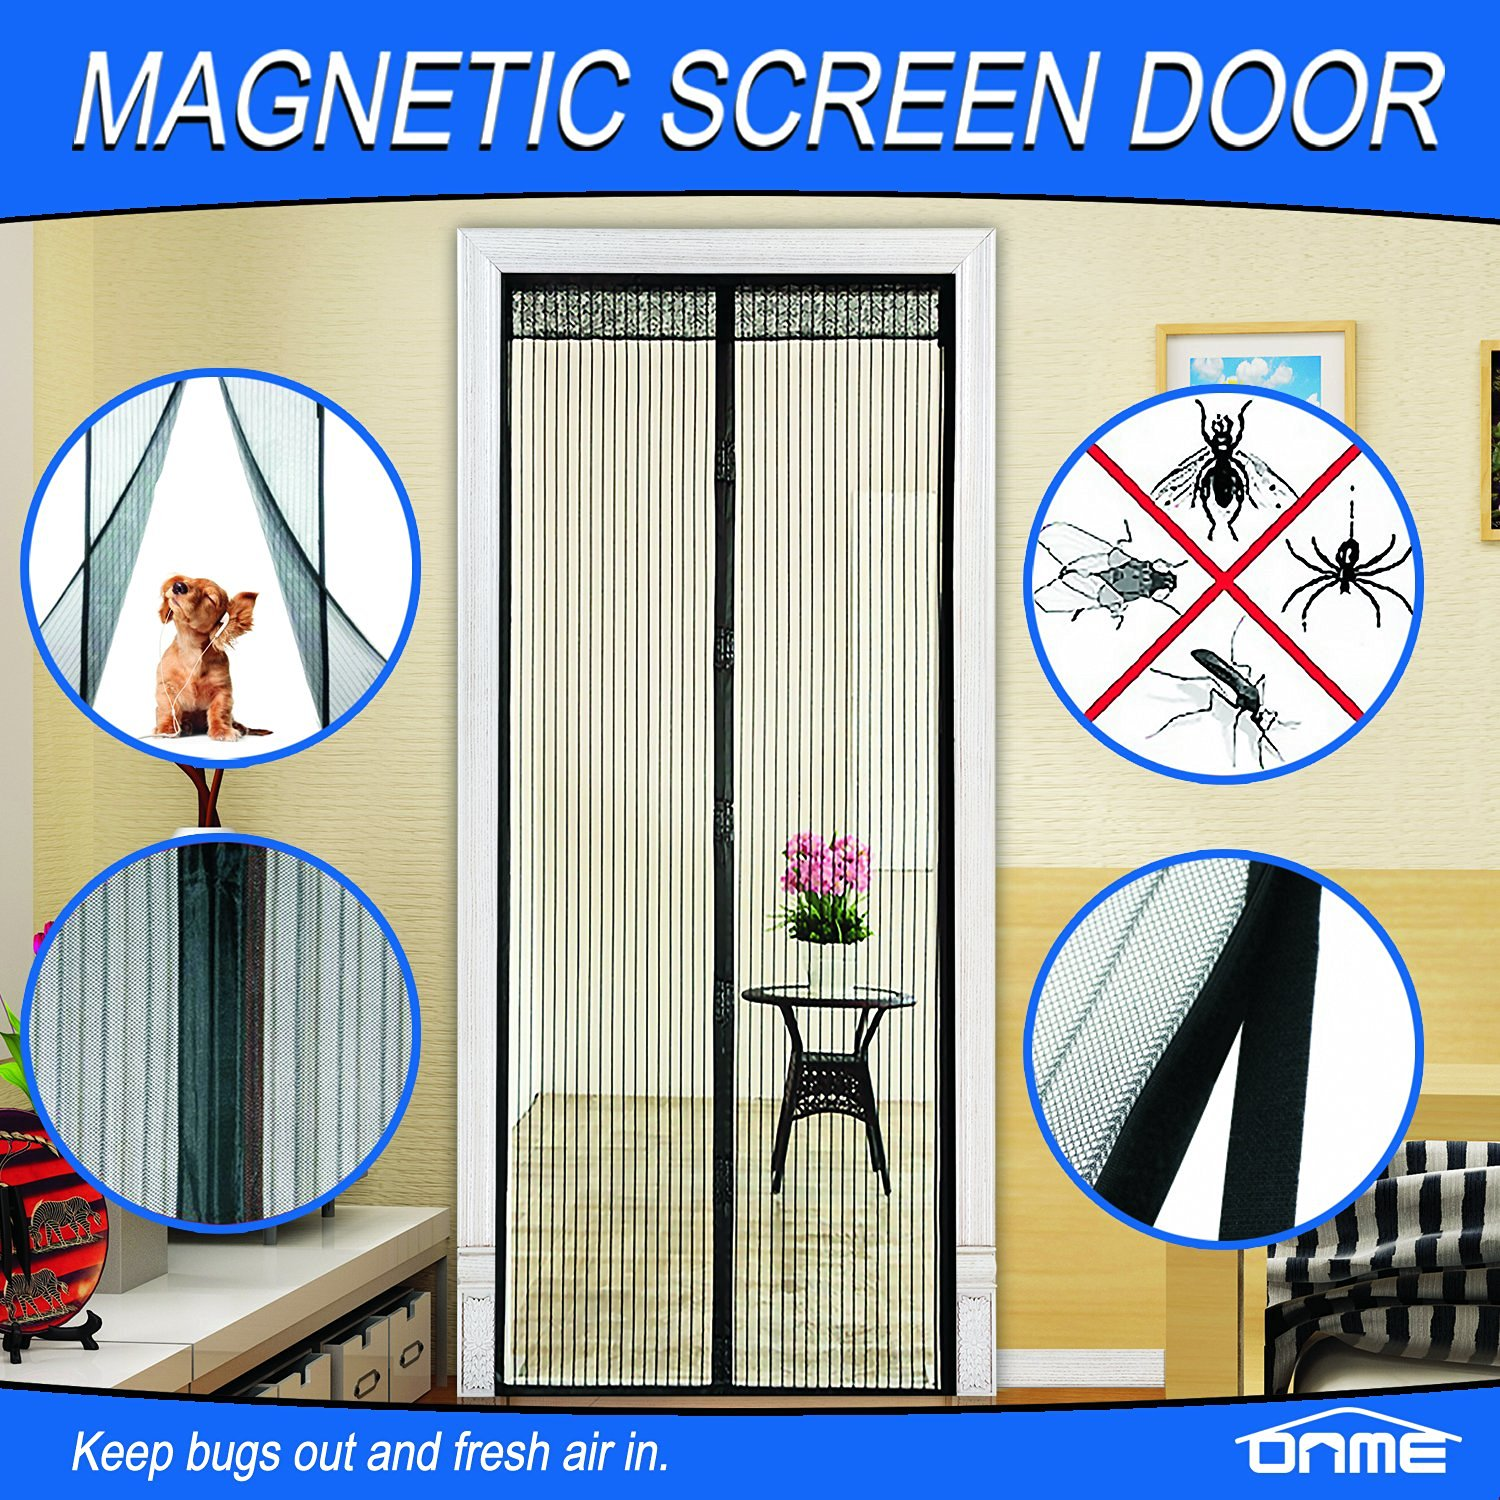 Onme magnetic screen door review i have seen these magnetic screen doors and always wanted one we dont really have any door this would work on other than our front door vtopaller Images